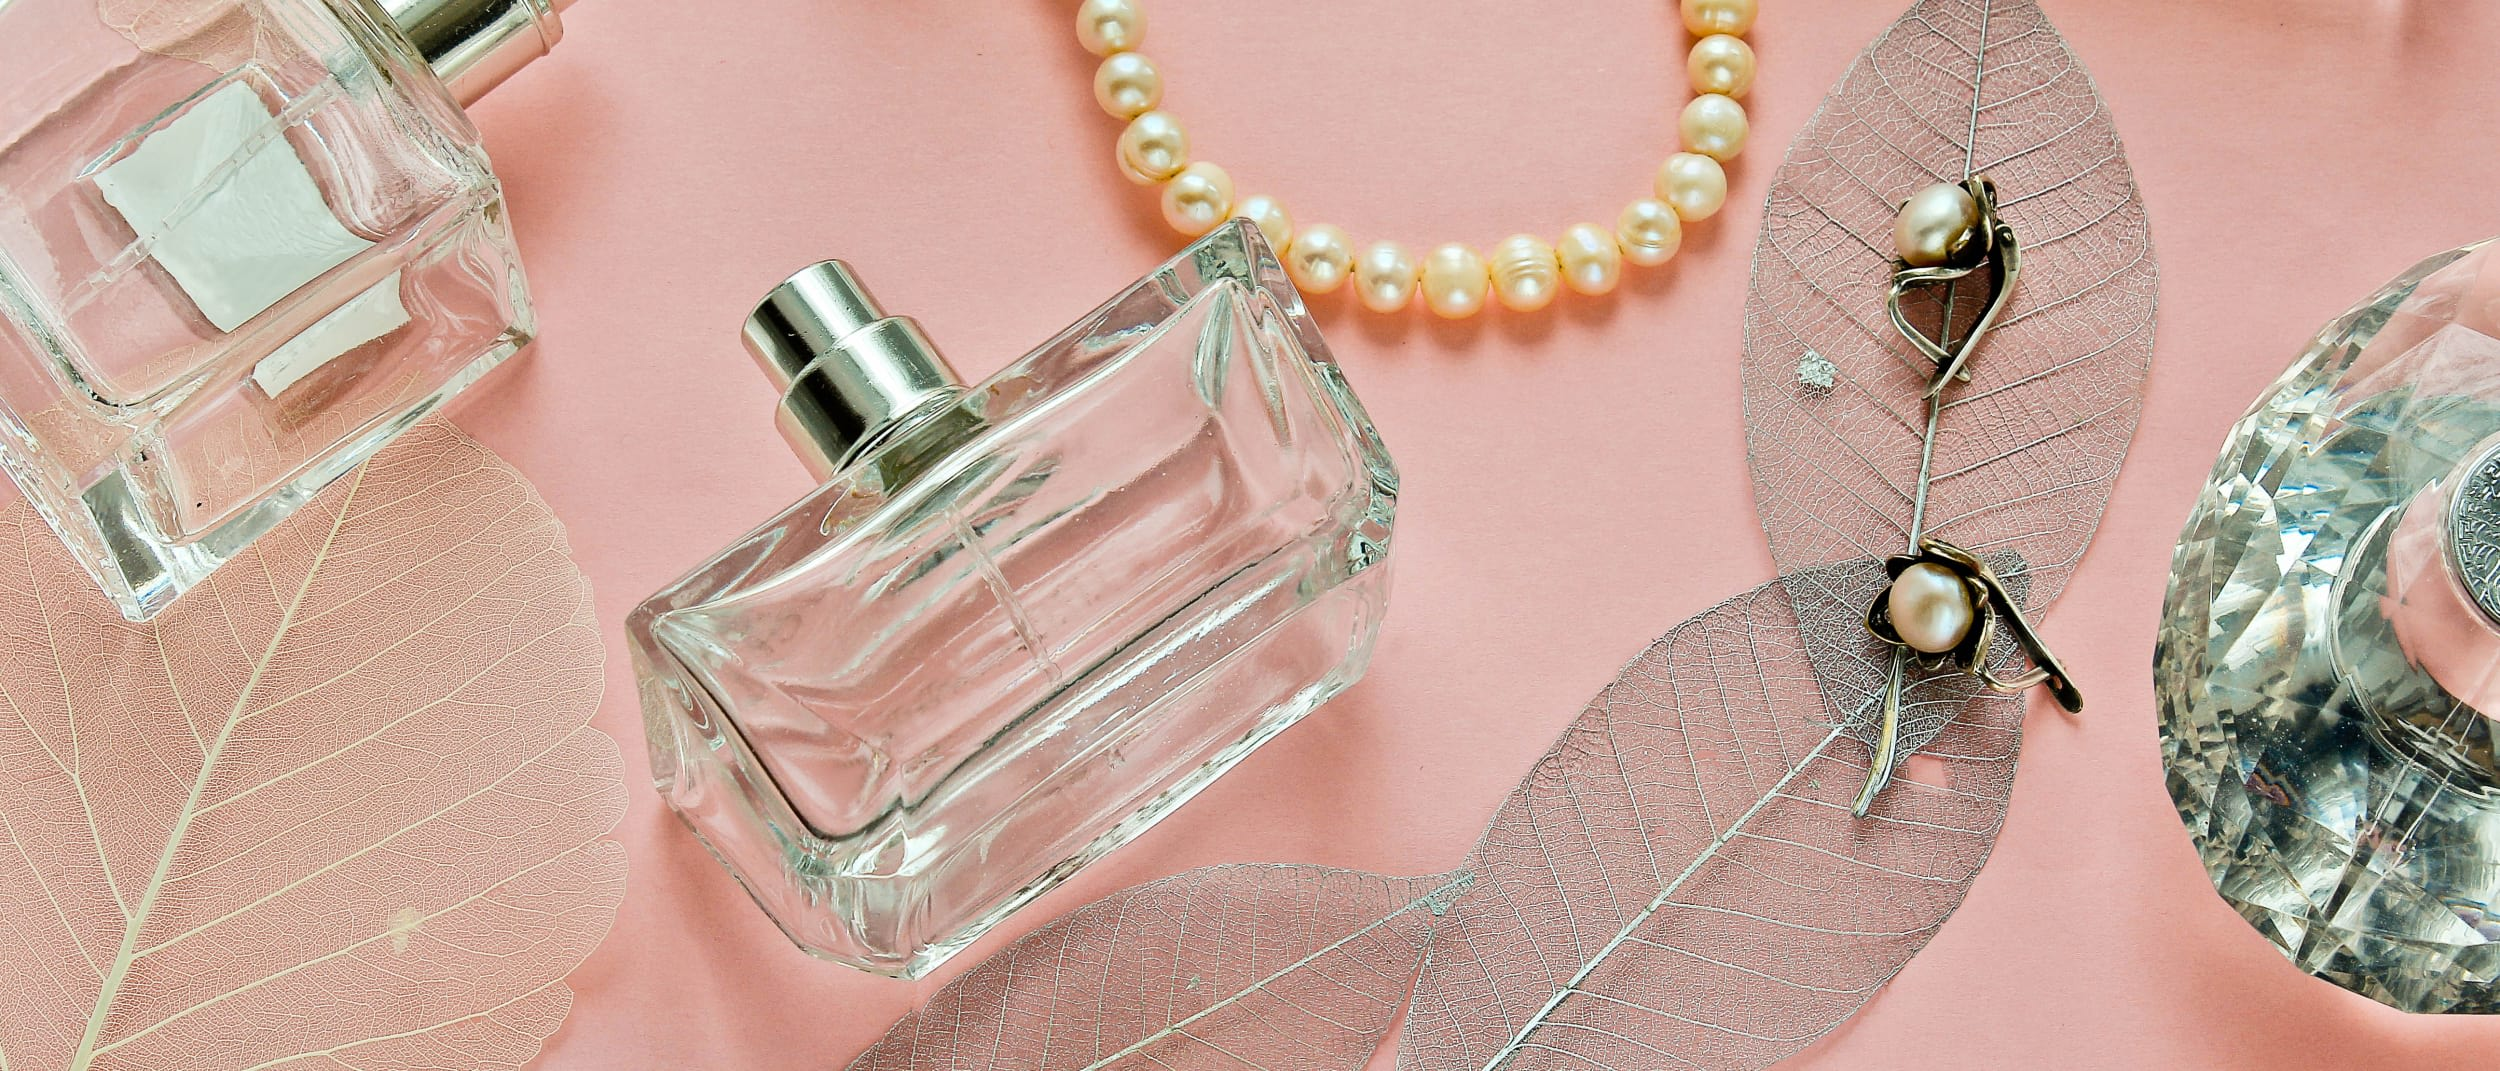 Scents The Perfume Specialists: stocktake sale